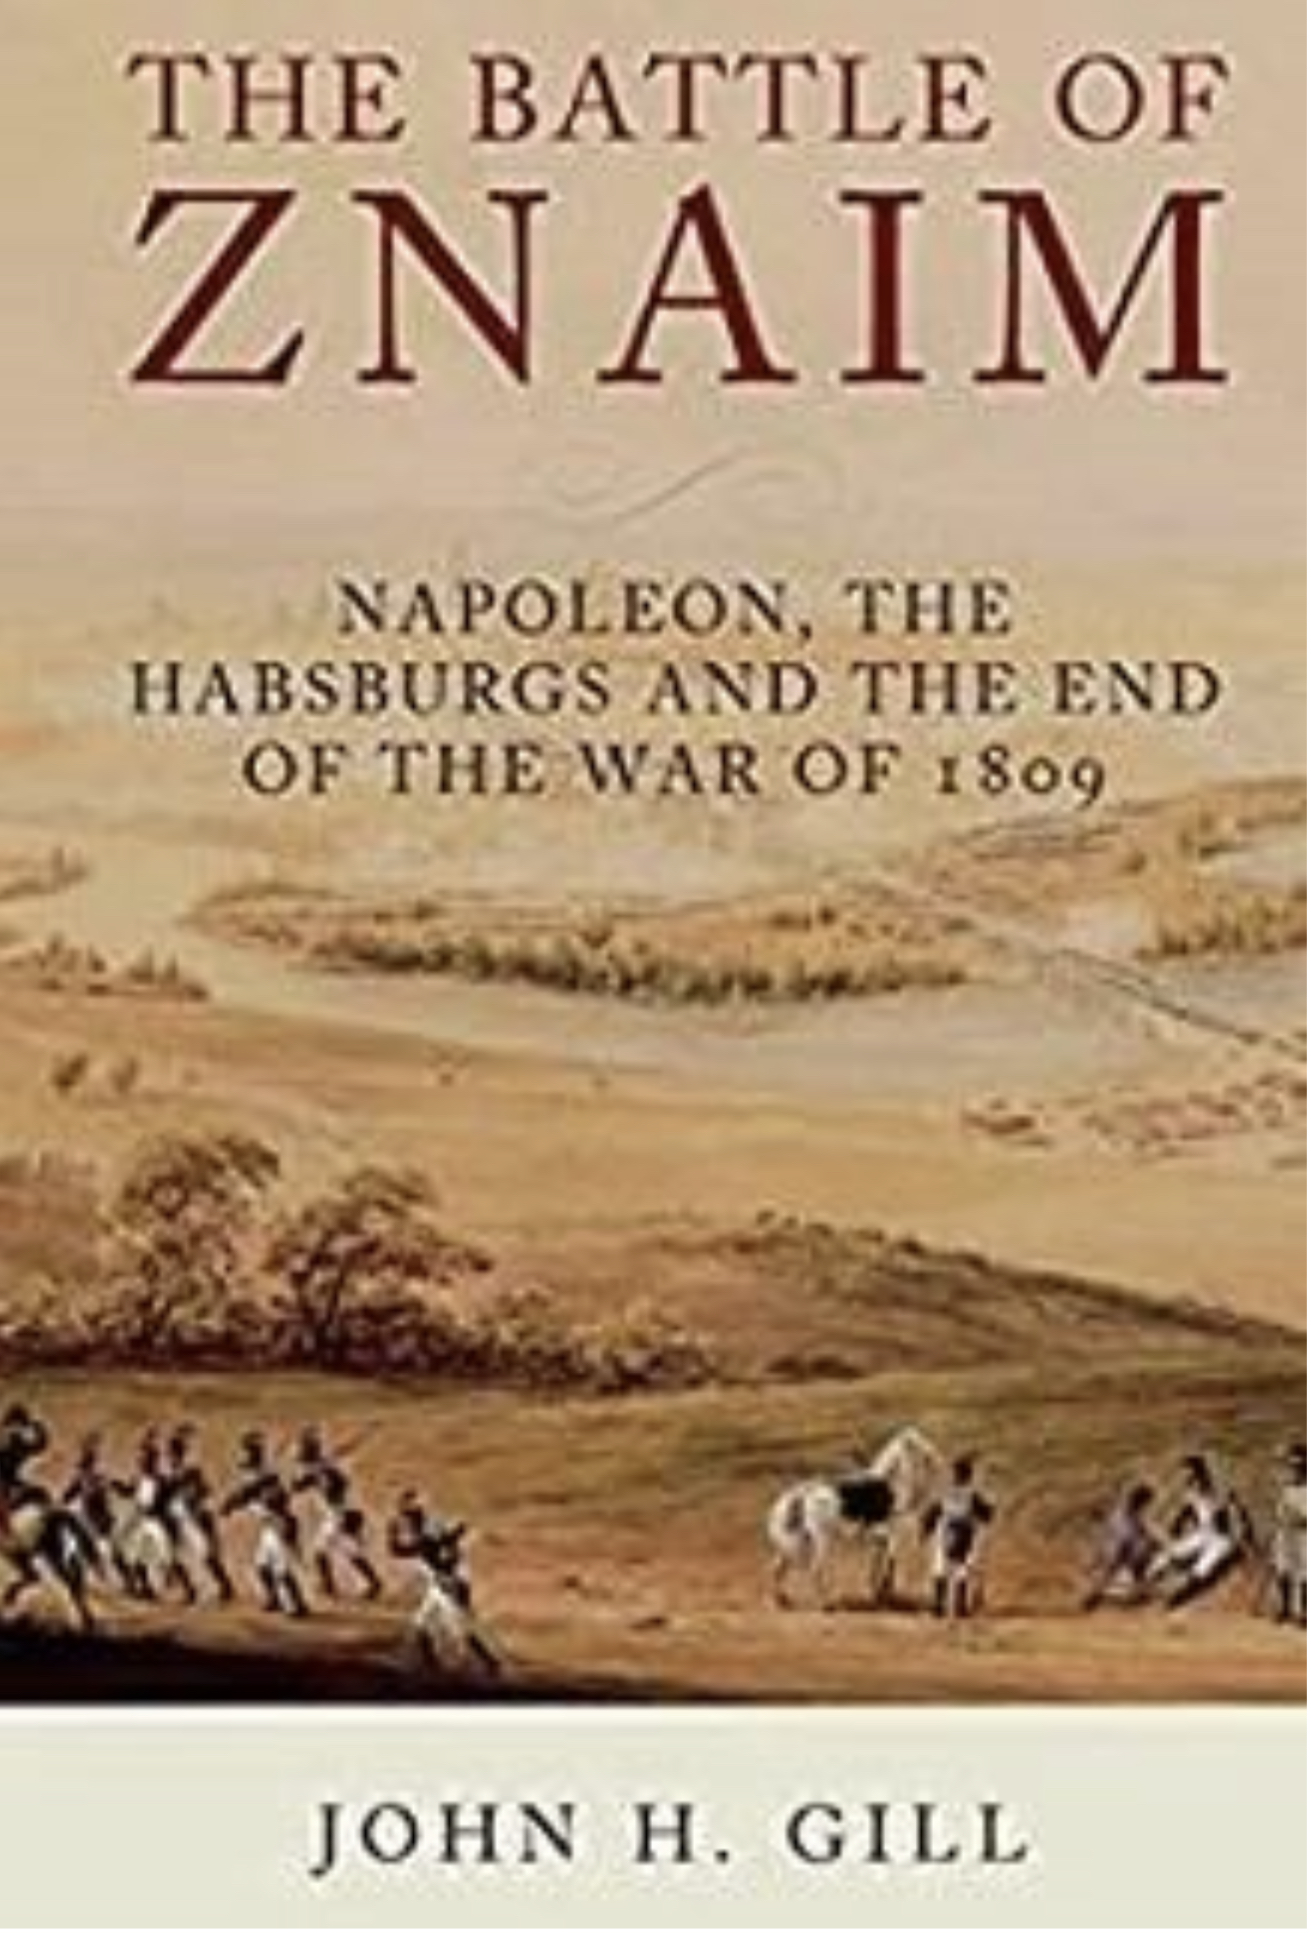 Book Review: The Battle of Znaim. by John Gill